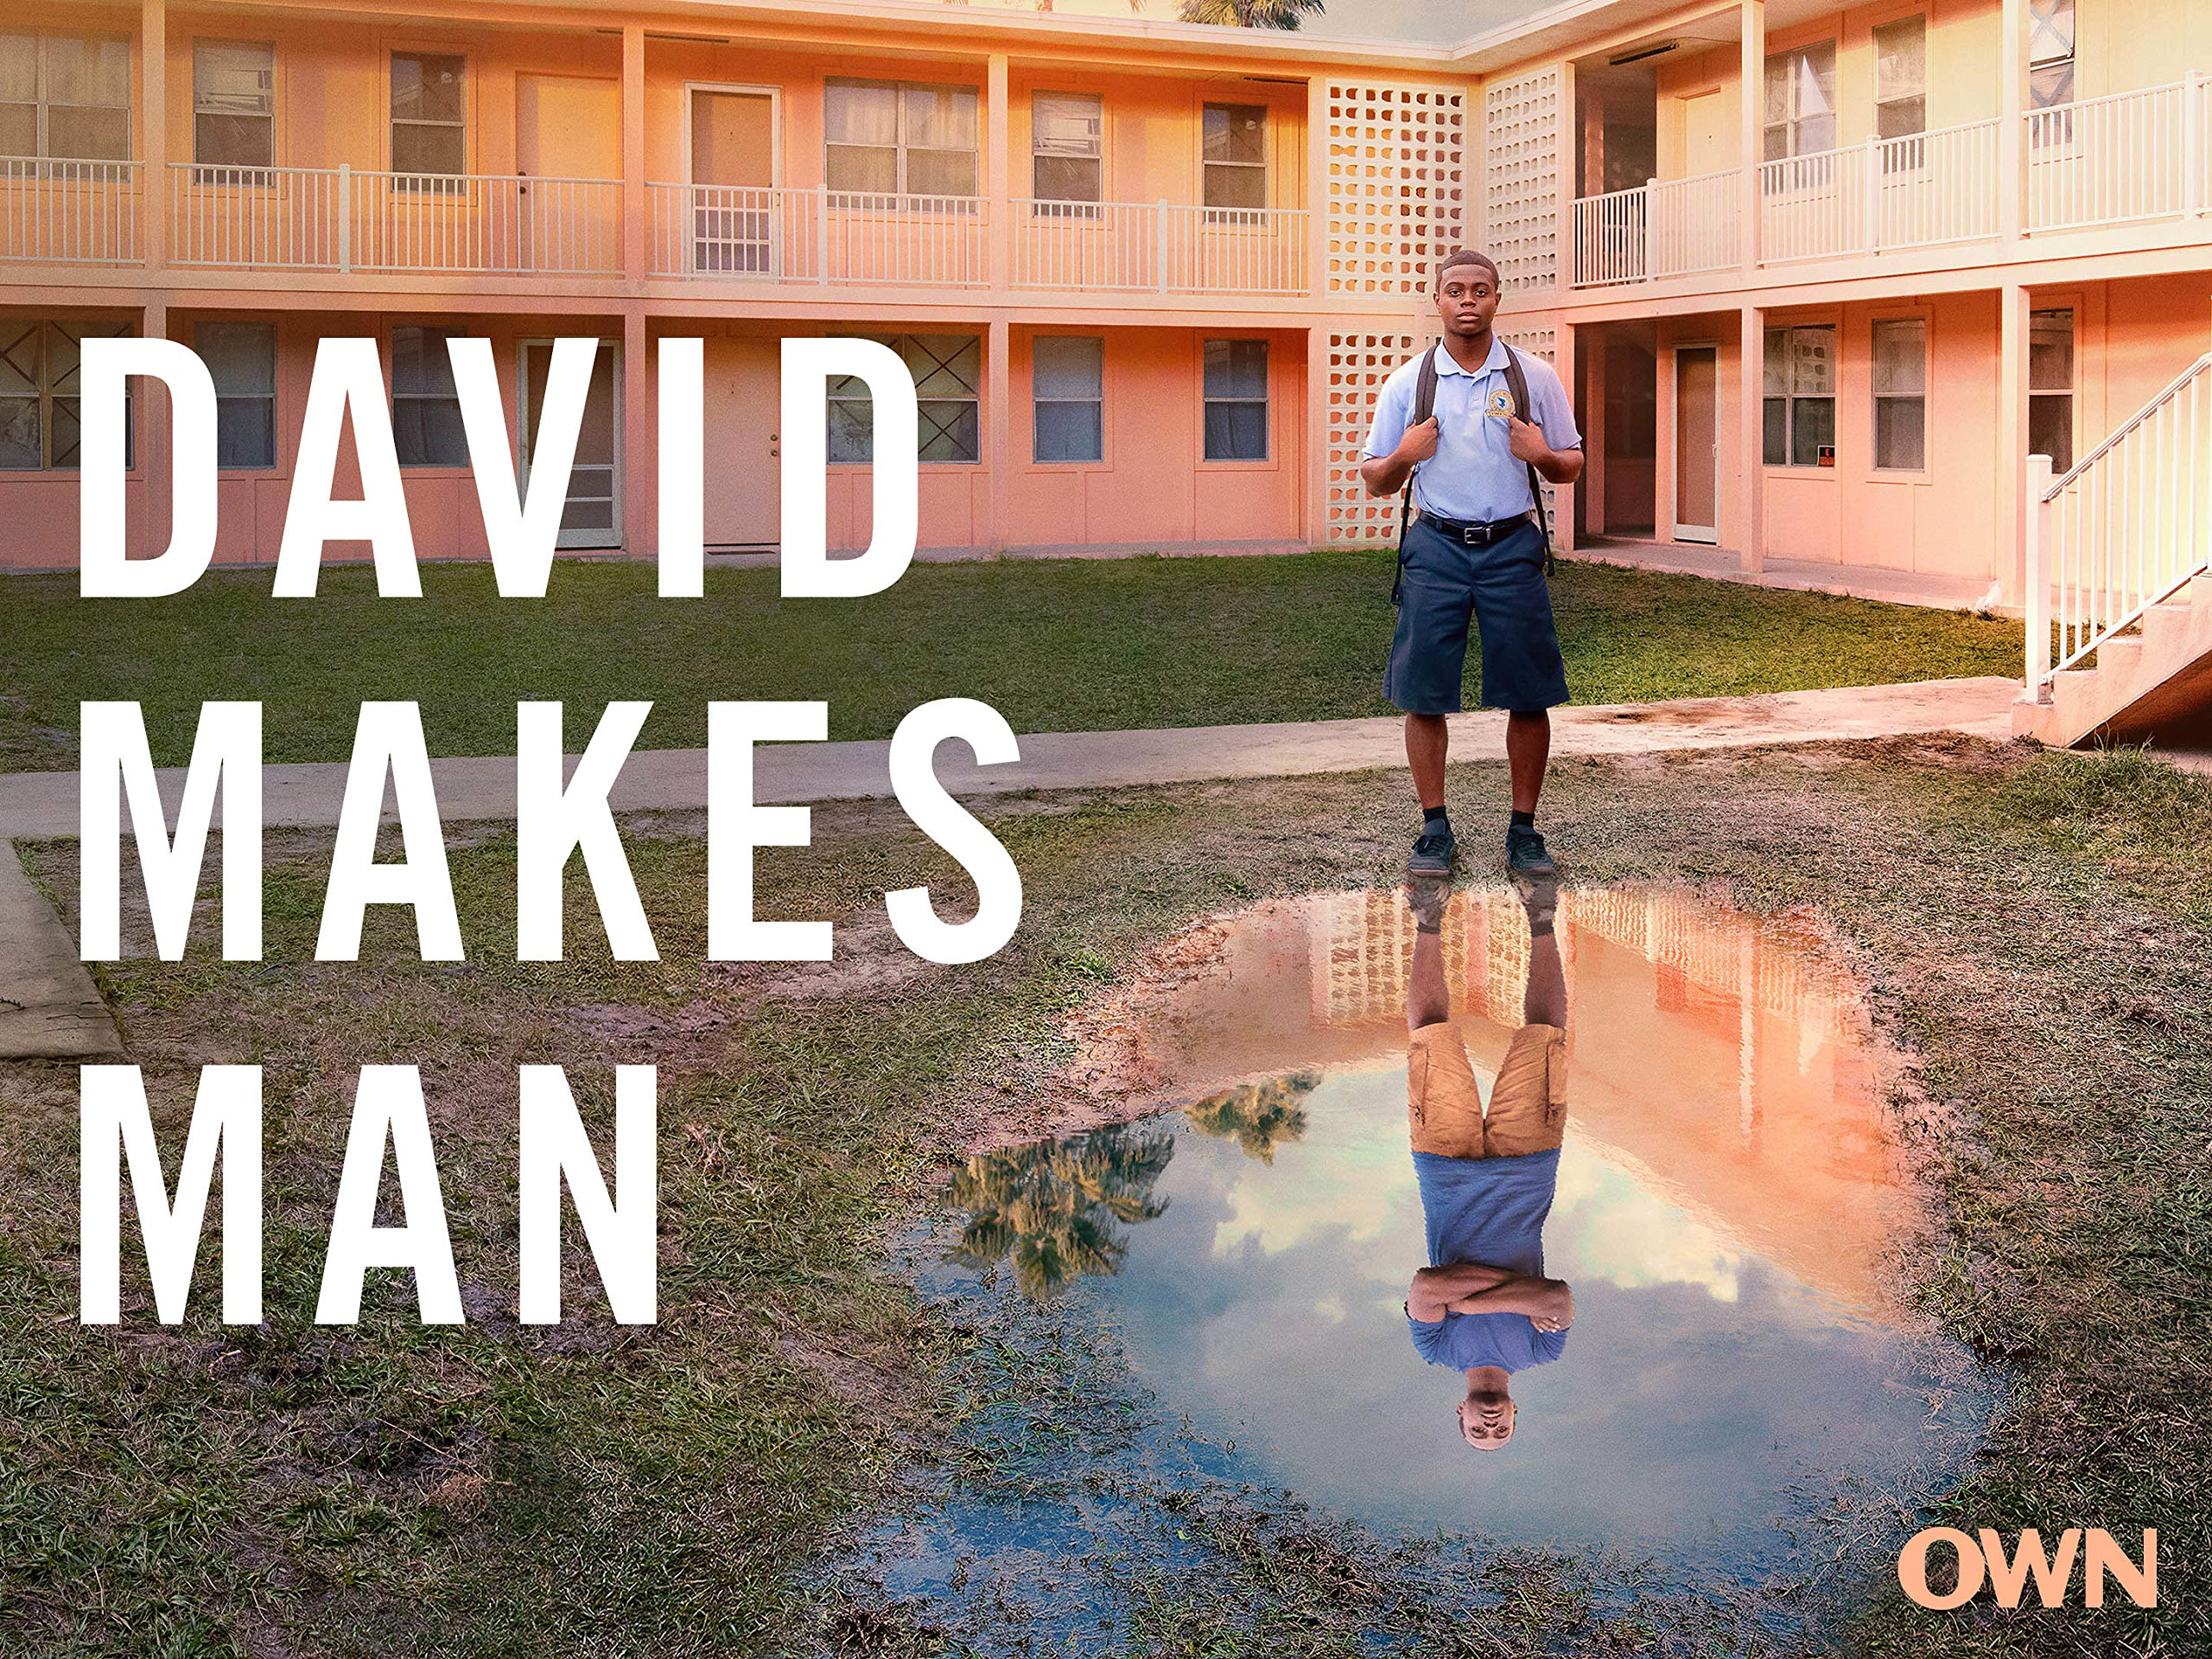 David Makes Man Season 2: Release Date, Trailer, Cast and More!